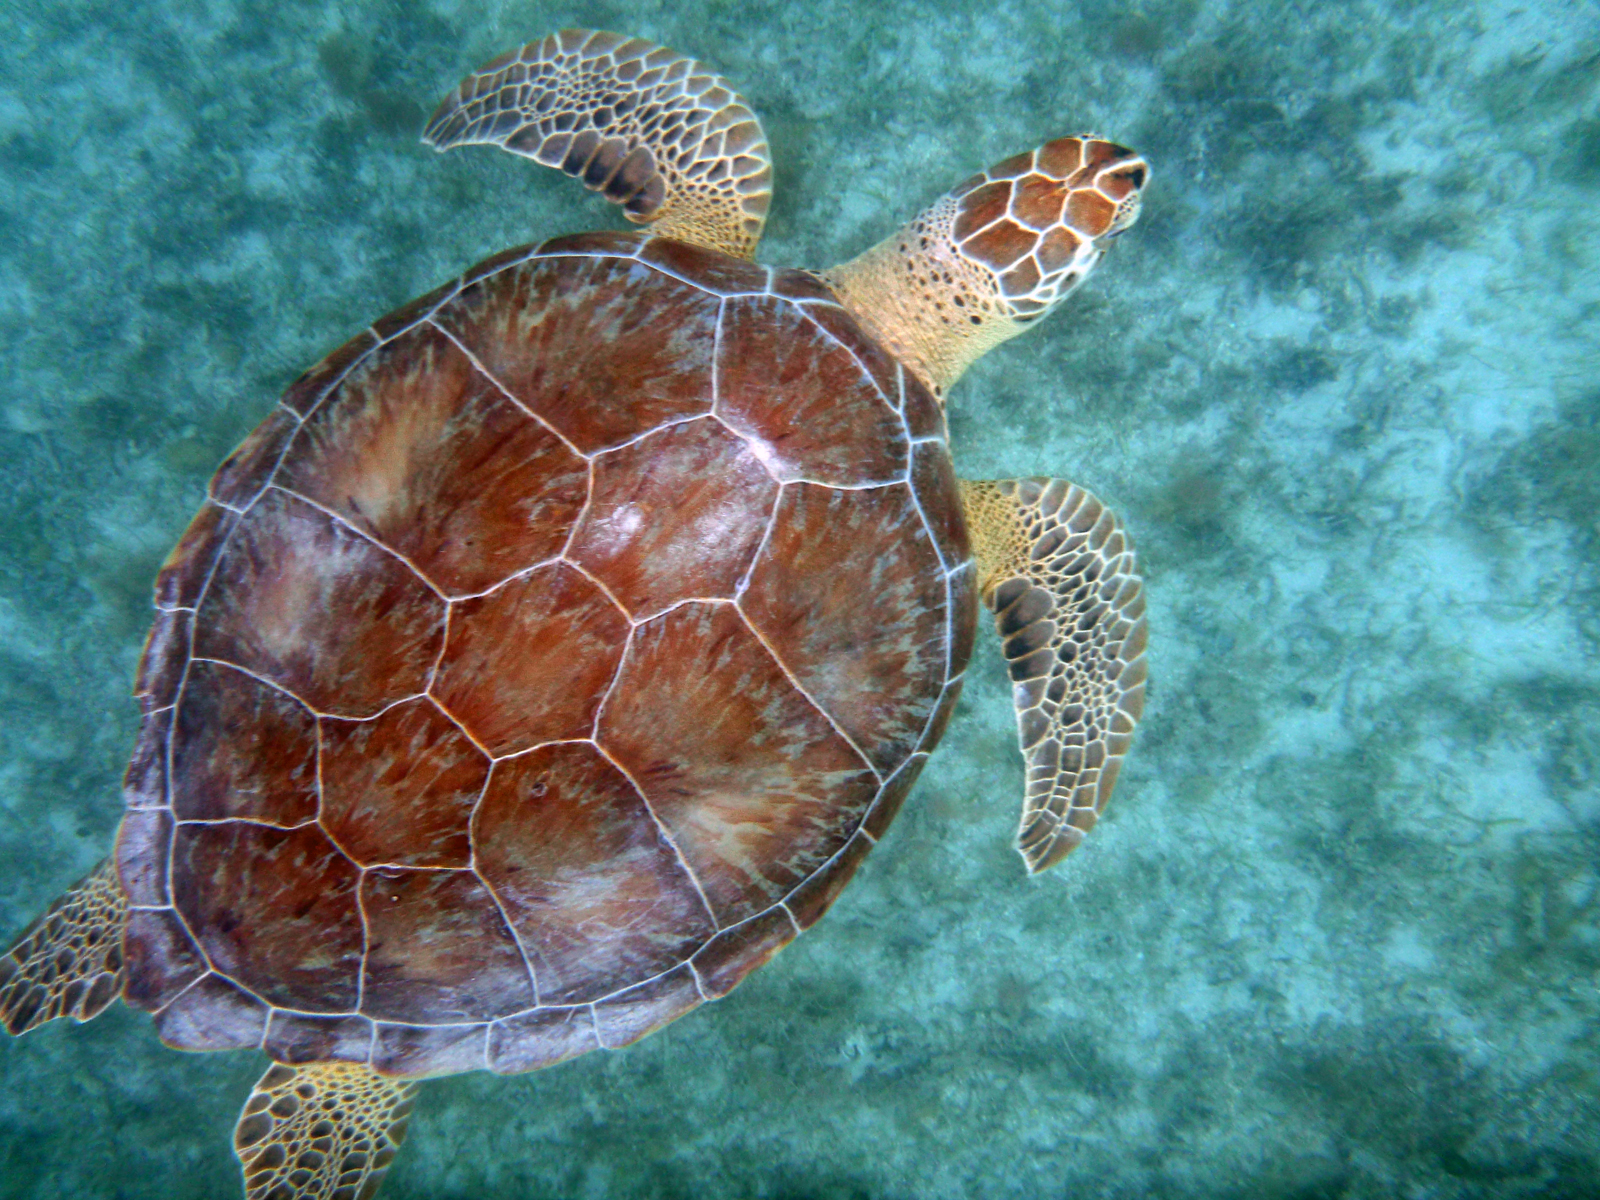 Would you like to observe sea turtles? Check out the grass beds of ...